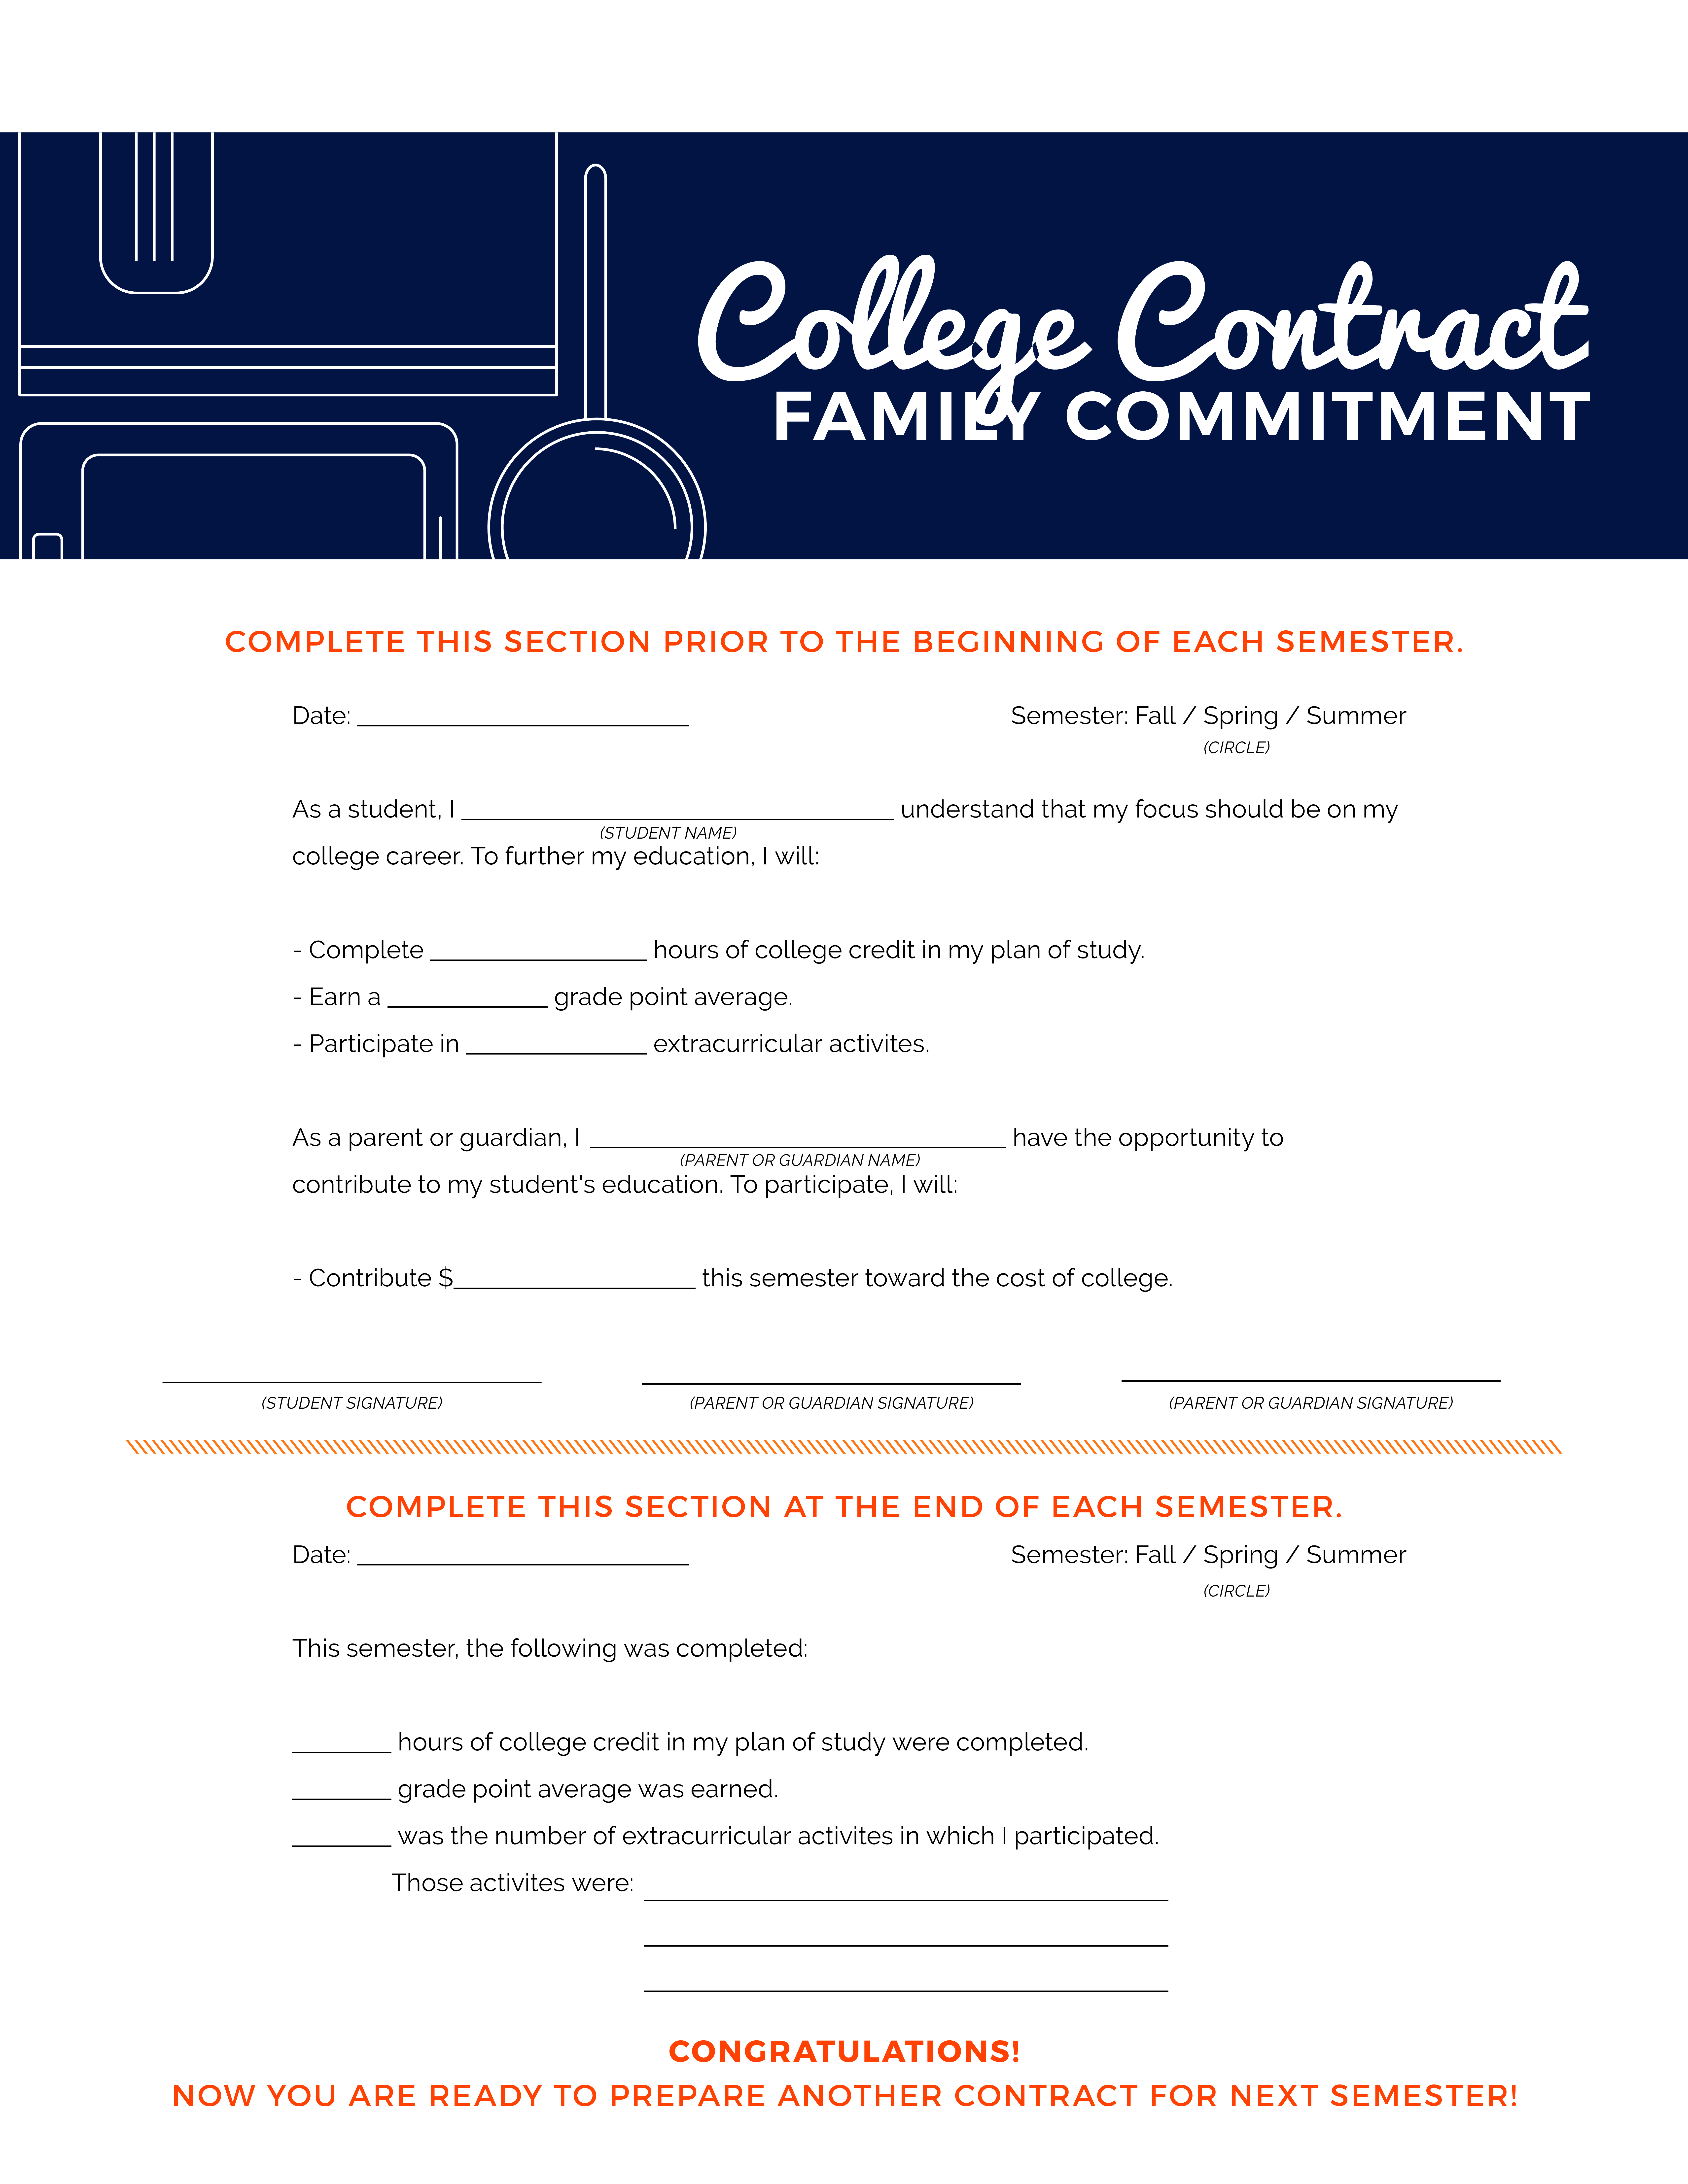 College Contract